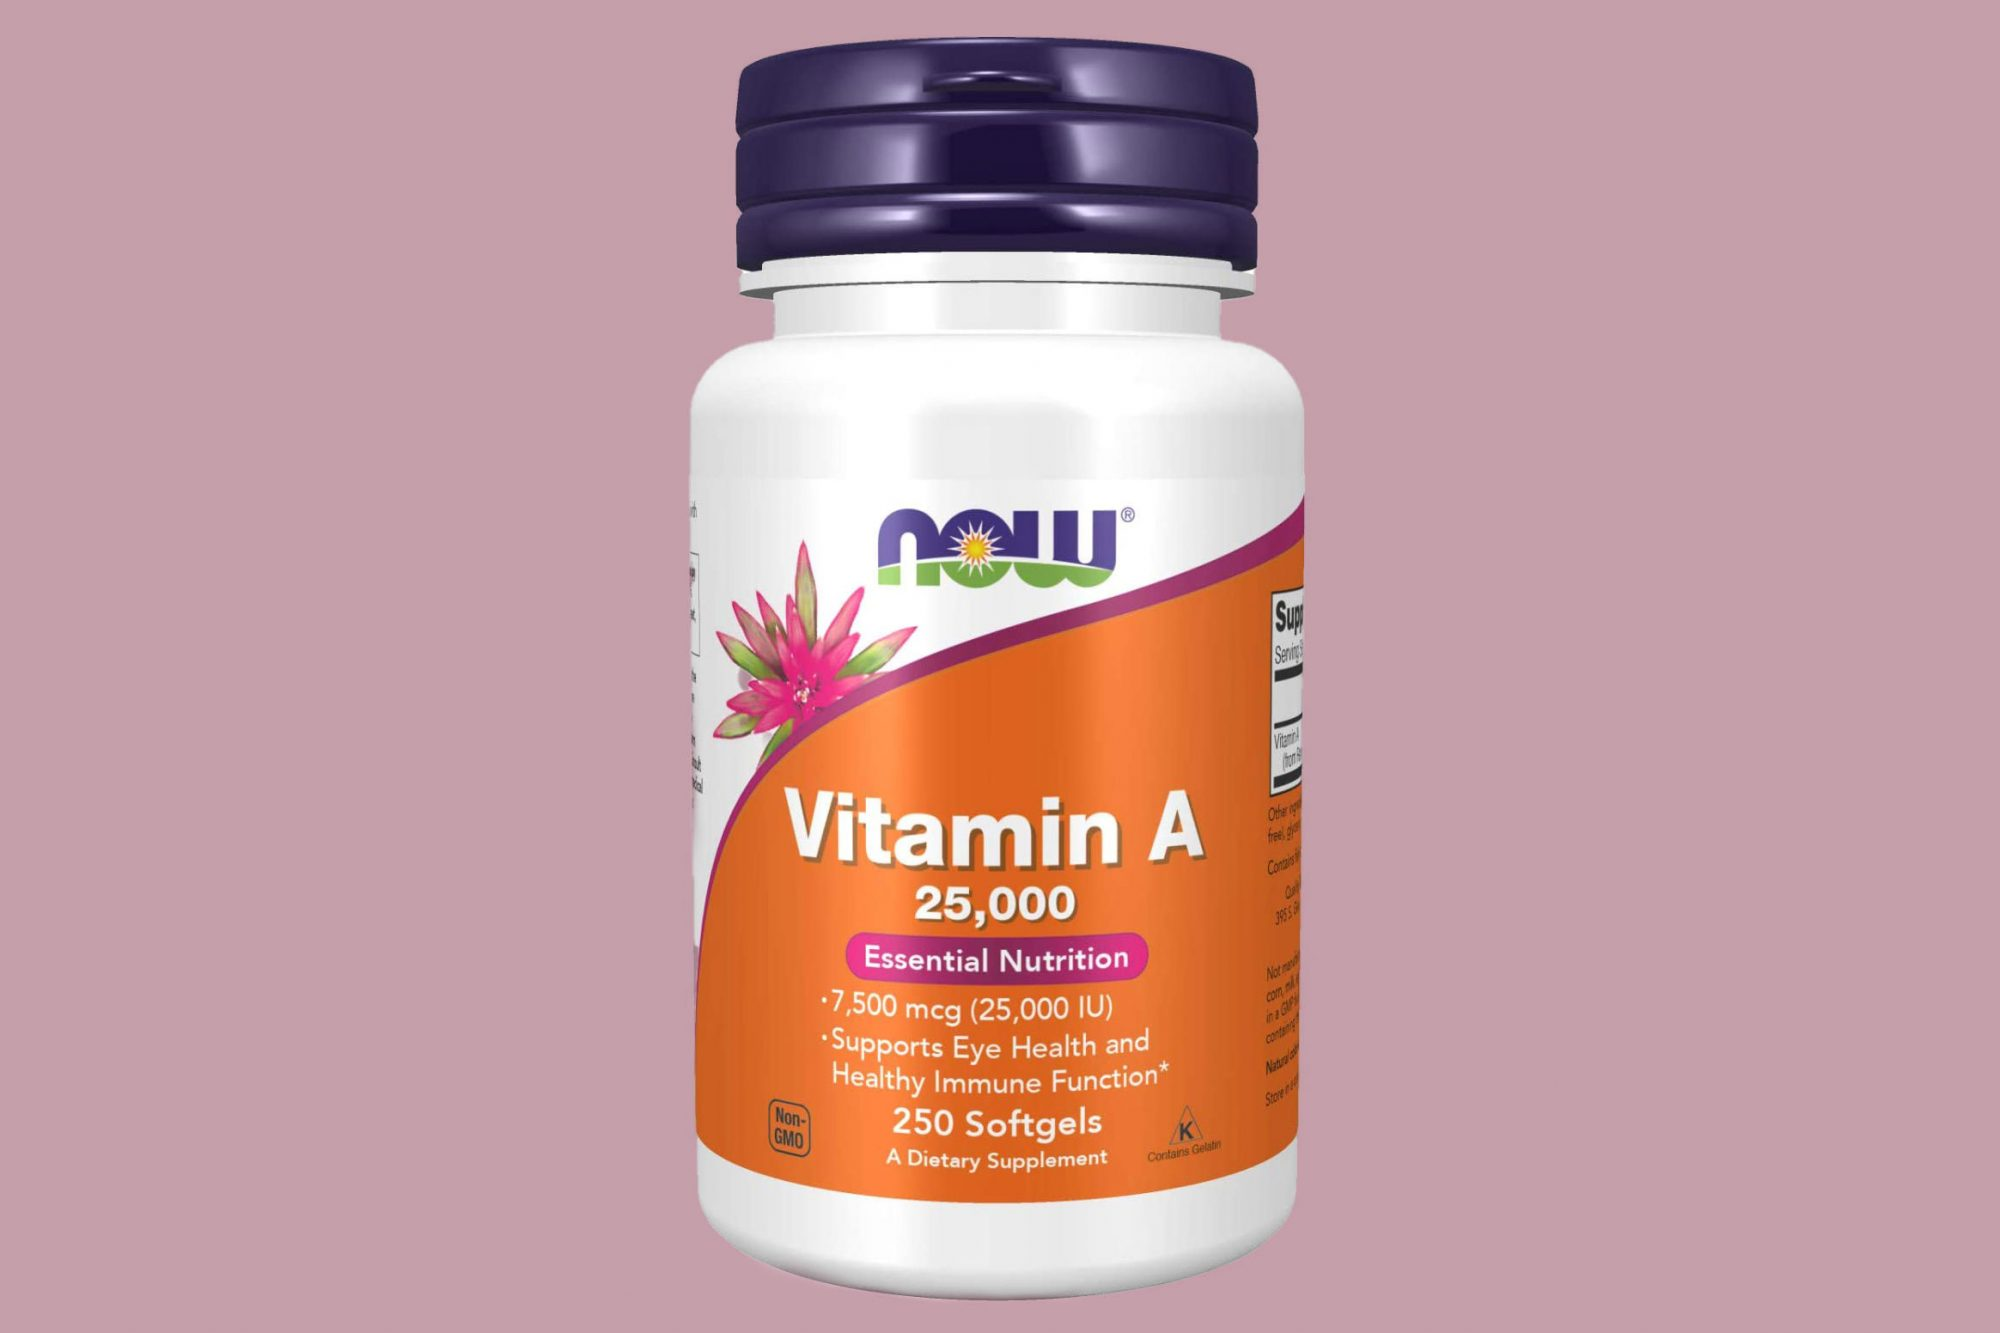 NOW Supplements Vitamin A